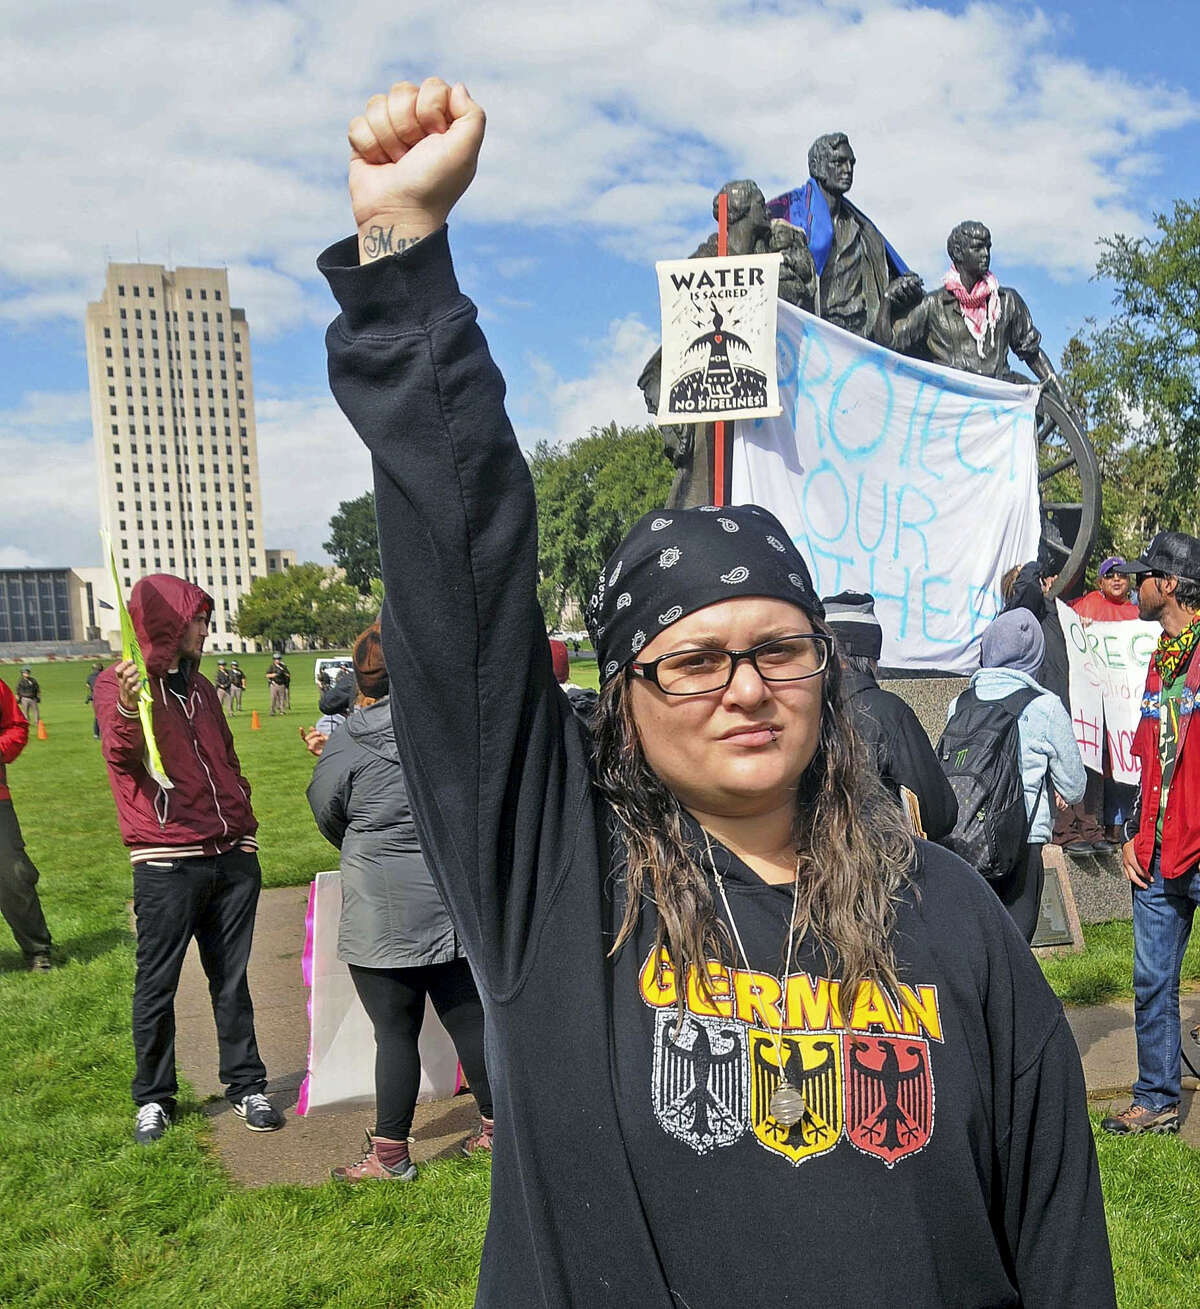 """Megan Tobin, of Bellevue, Ohio protests on the grounds of the North Dakota state capitol on Sept. 9, 2016 in Bismarck, N.D. The federal government stepped into the fight over the Dakota Access oil pipeline Friday, ordering work to stop on one segment of the project in North Dakota and asking the Texas-based company building it to """"voluntarily pause"""" action on a wider span that an American Indian tribe says holds sacred artifacts."""